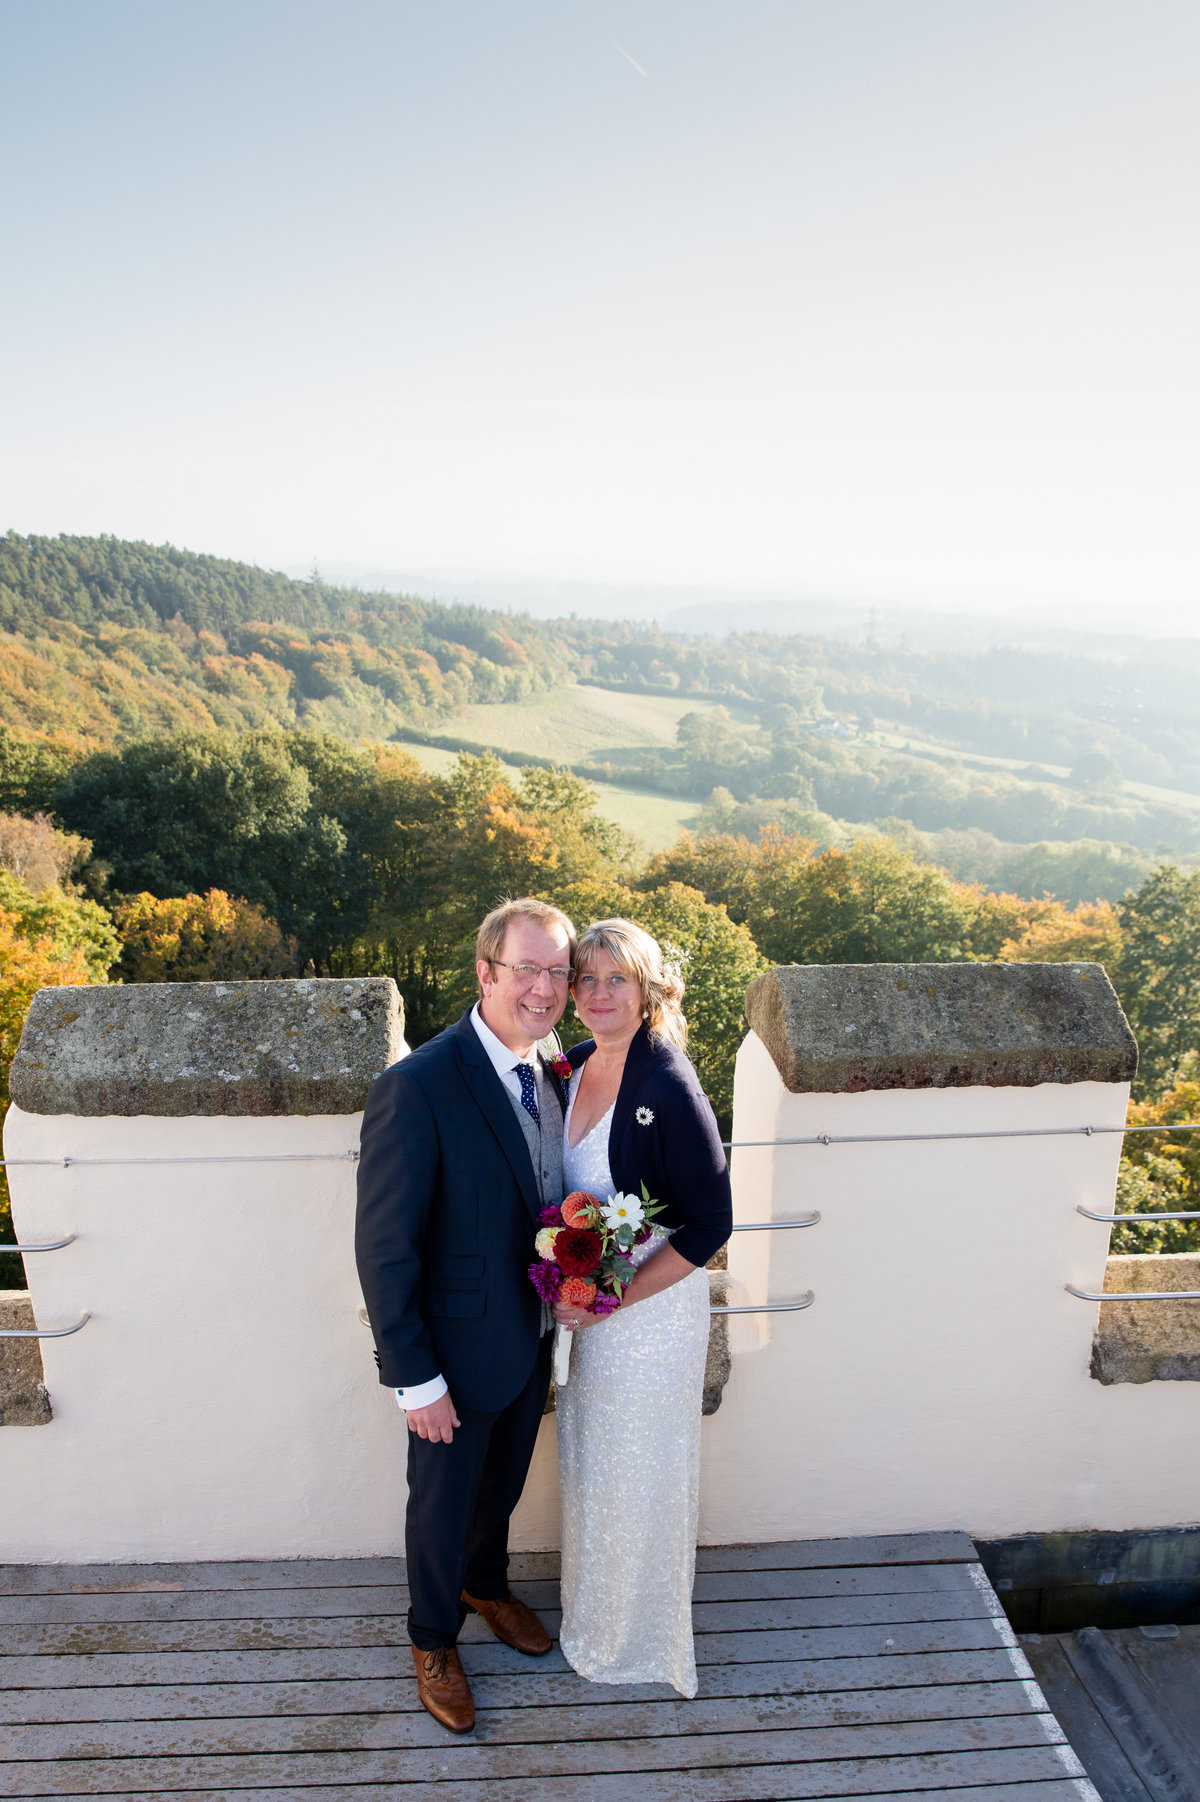 haldon belvedere wedding on the roof